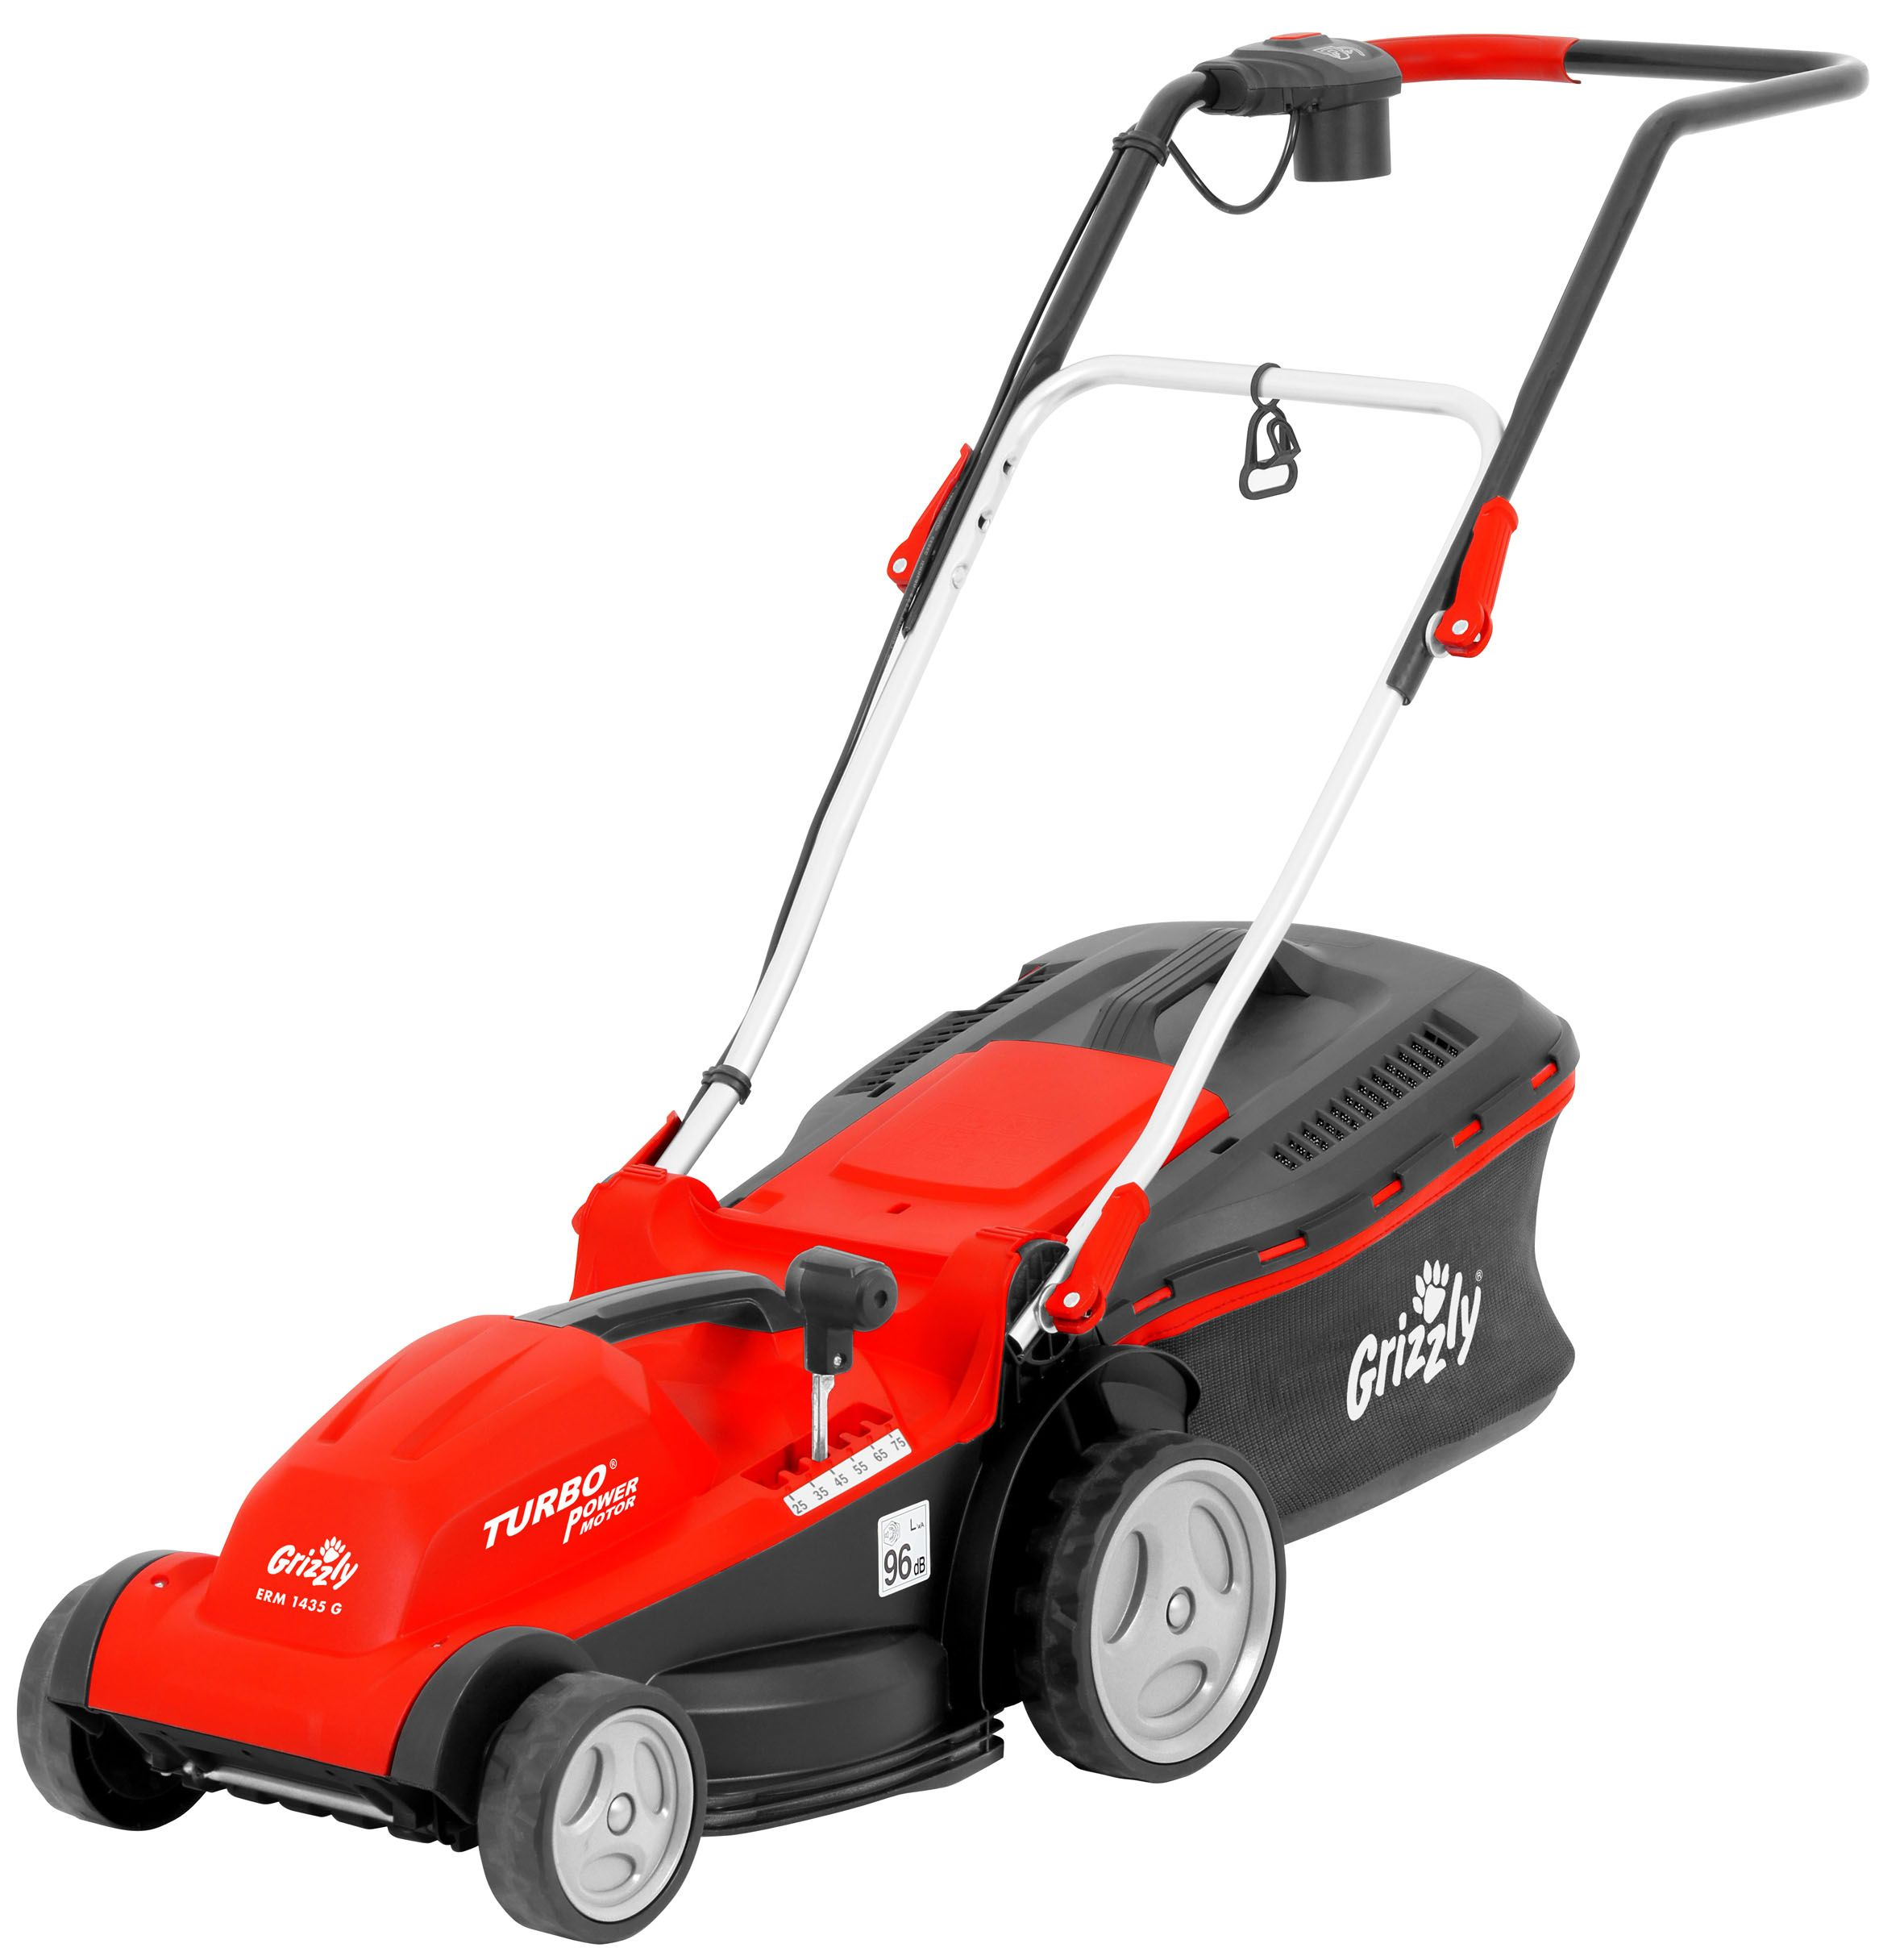 Image of Grizzly Grizzly 1400w electric mower 35cm cut